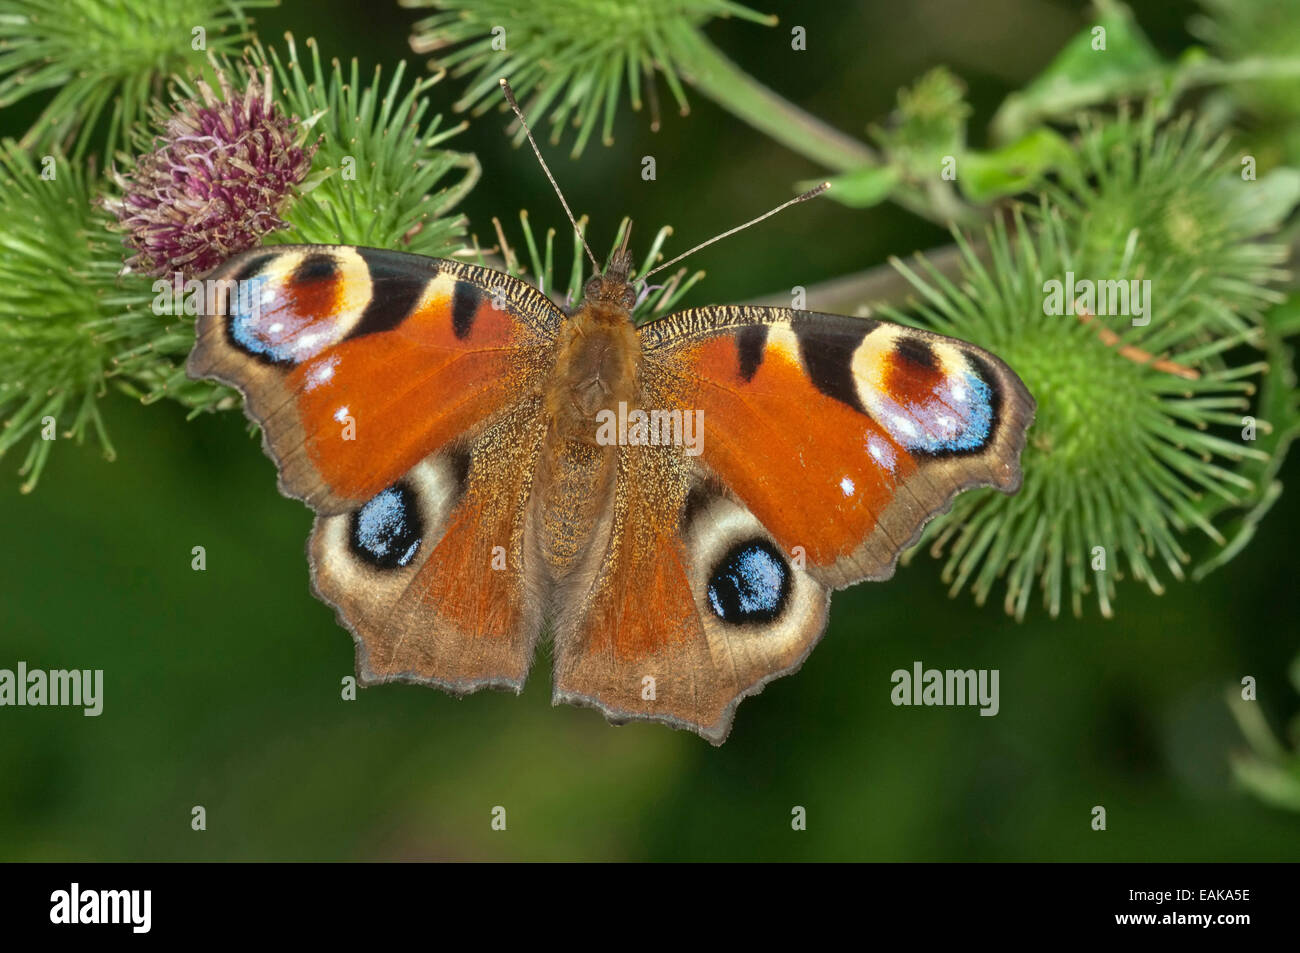 European Peacock or Peacock Butterfly (Inachis io) in search of nectar on a Greater Burdock (Arctium lappa), Baden - Stock Image